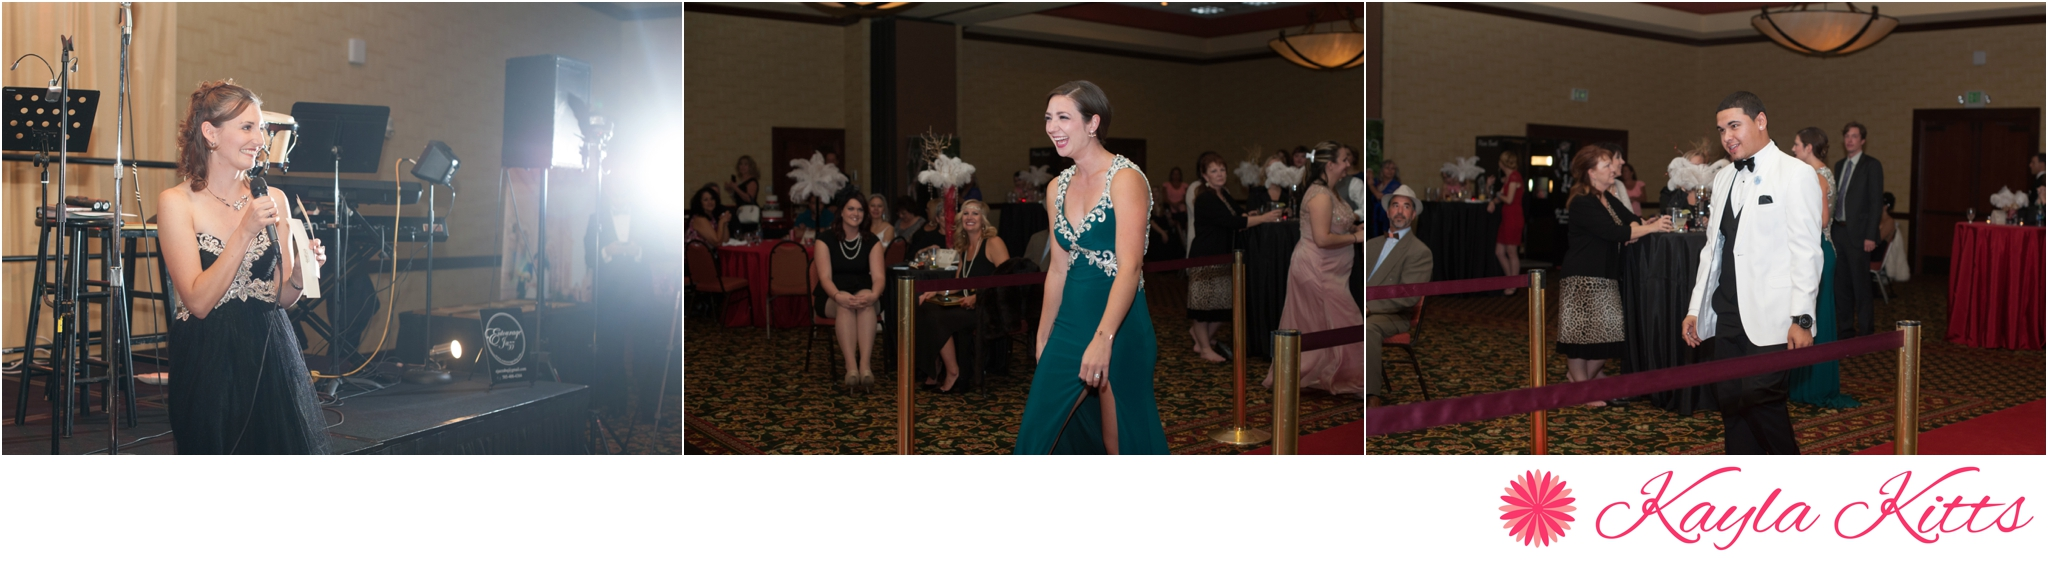 kayla kitts photography - perfect wedding guide - client appreciation party - albuqueruqe marriott_0013.jpg